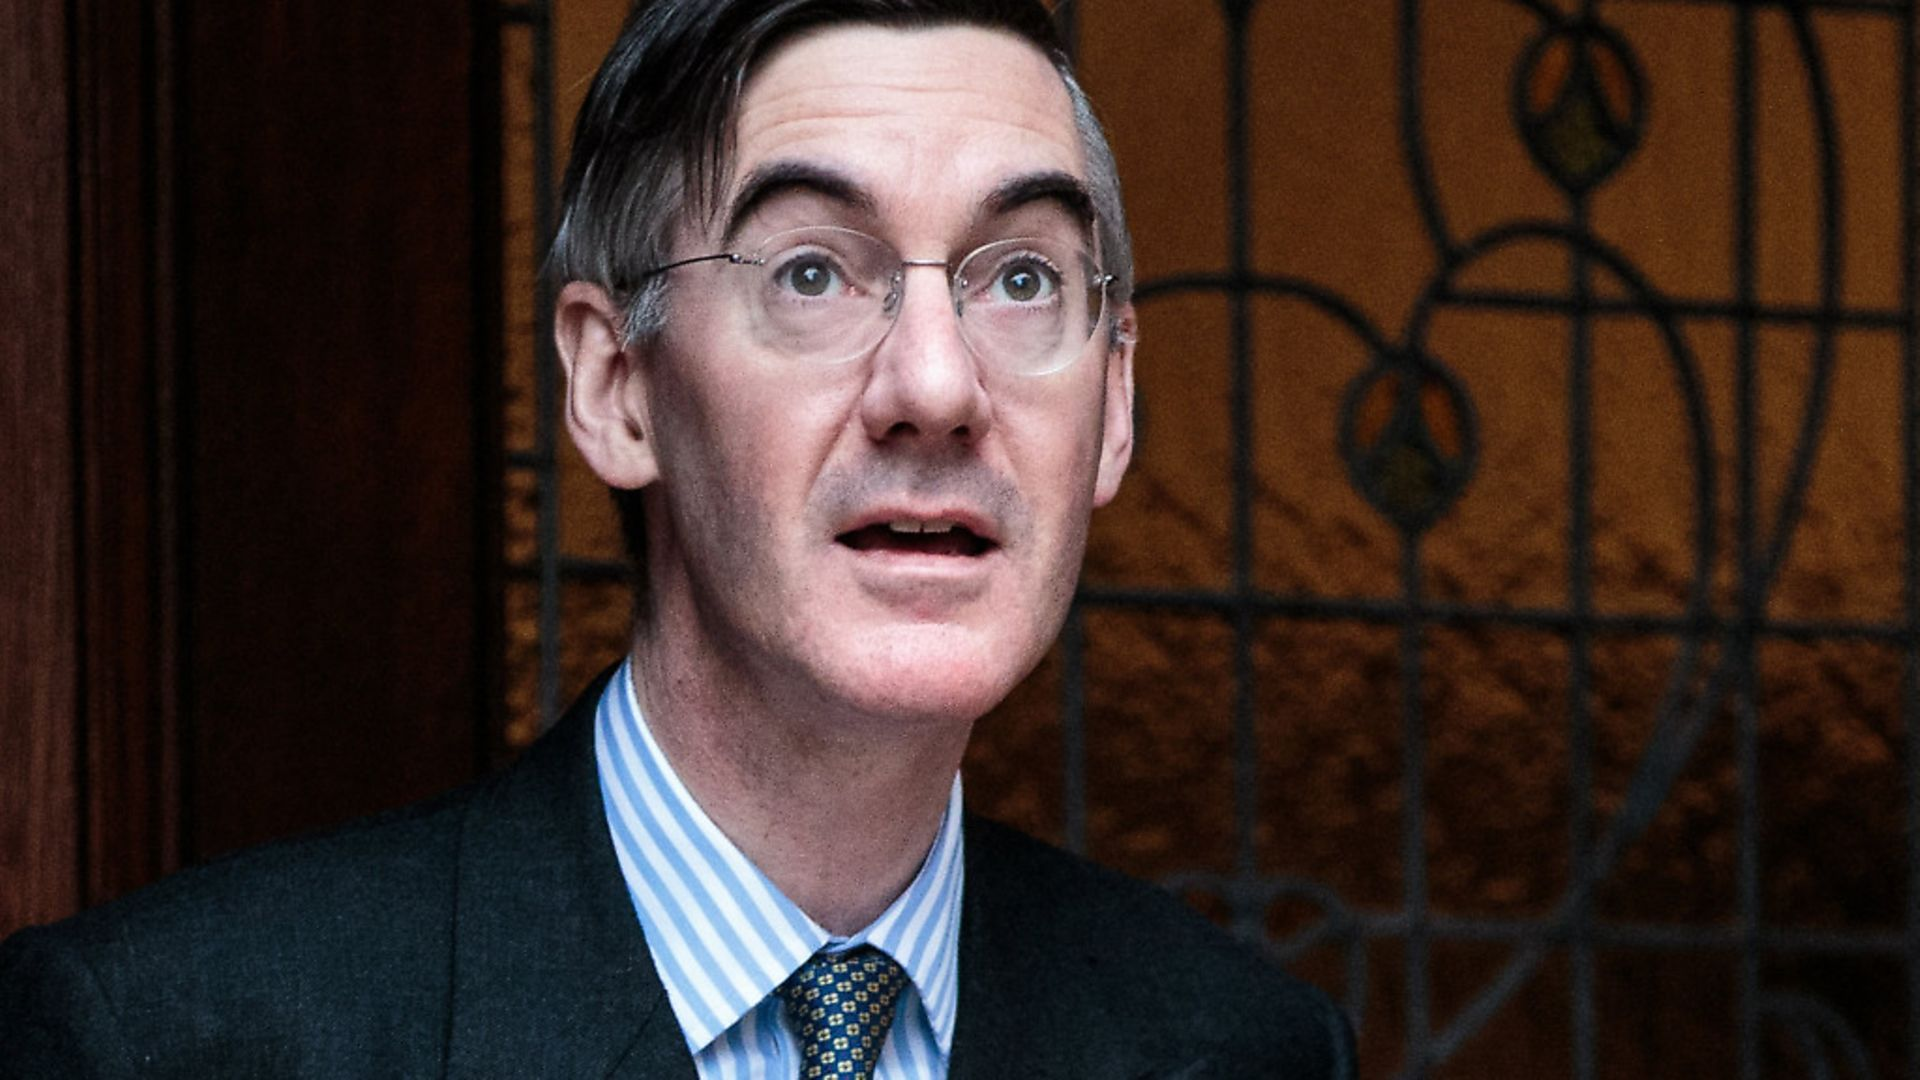 Womad woes for Jacob Rees-Mogg (Photo by Jack Taylor/Getty Images) - Credit: Getty Images